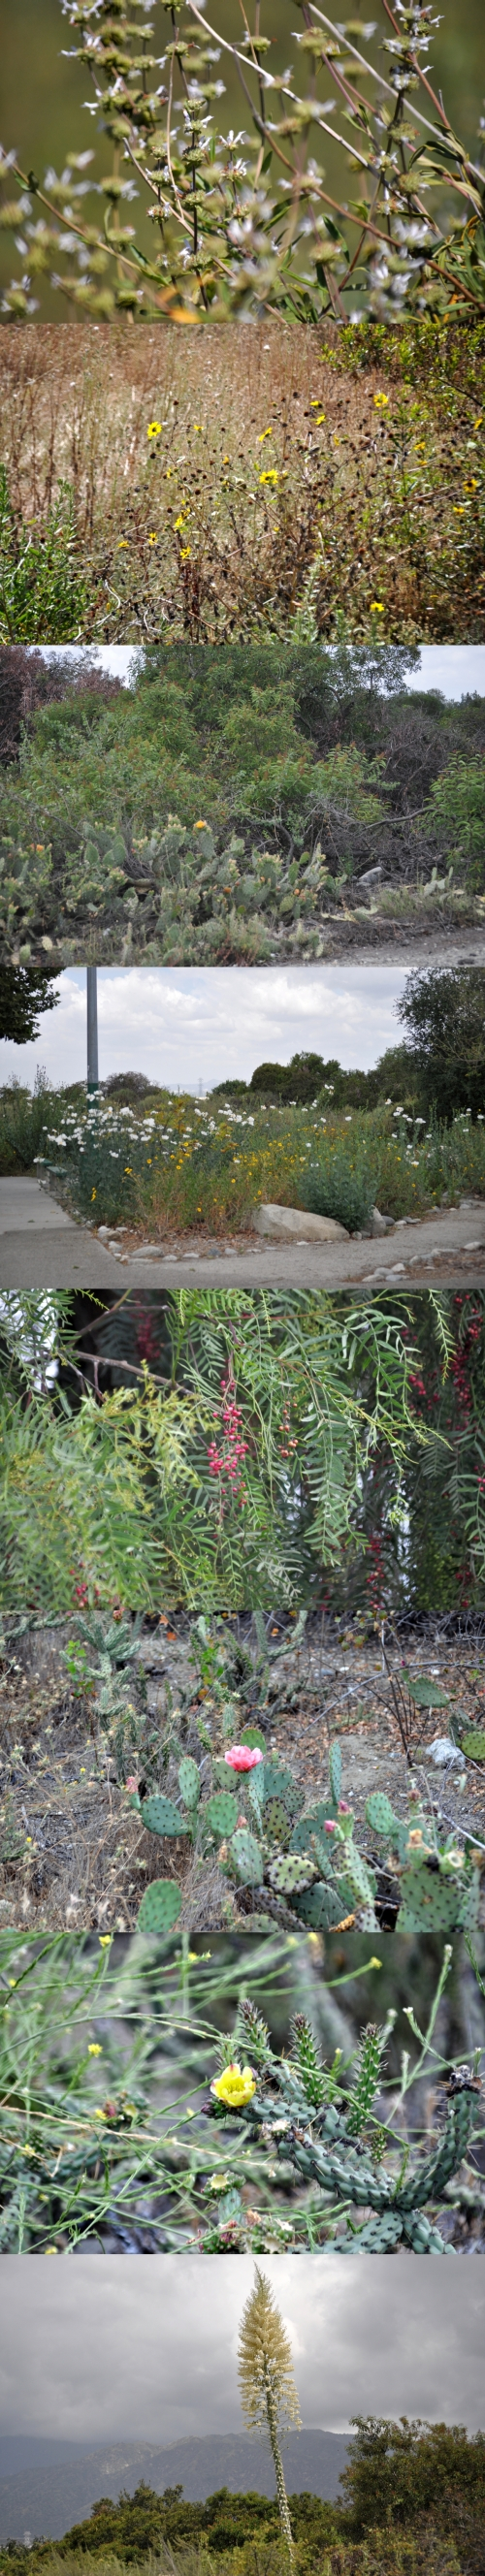 Vegetation around the San Gabriel Nature Preserve